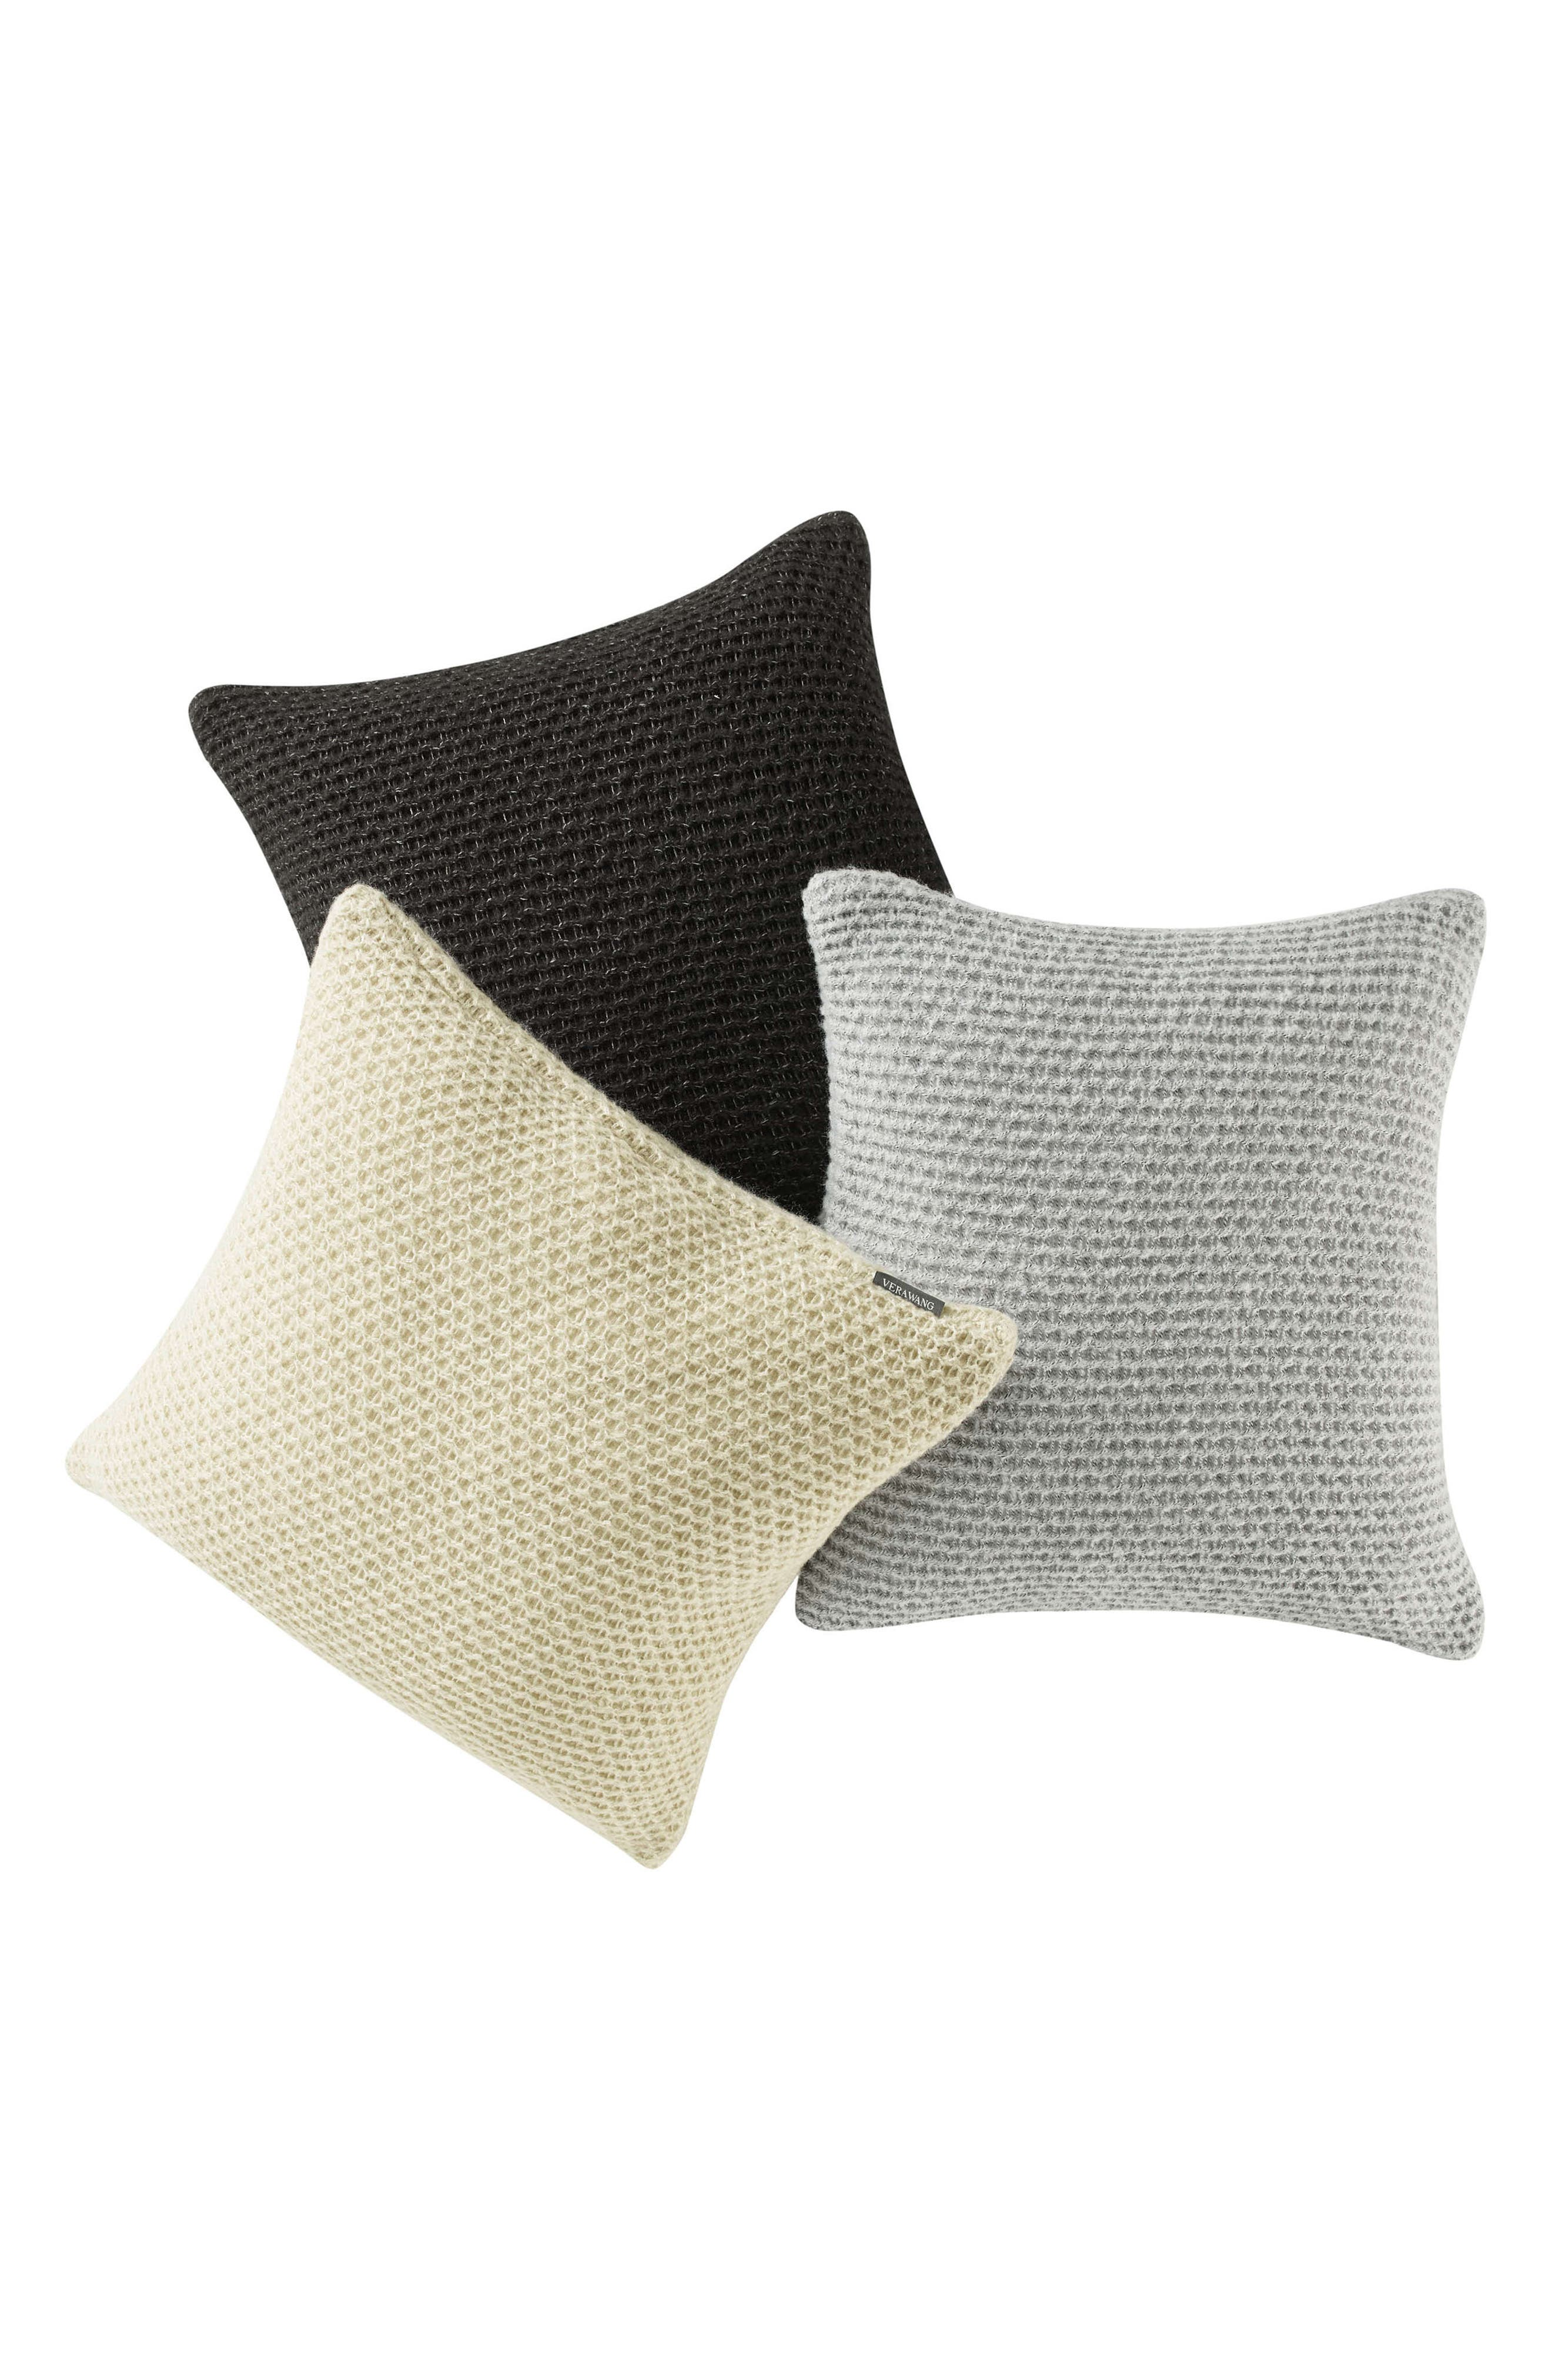 Marled Knit Accent Pillow,                             Alternate thumbnail 2, color,                             SOOT